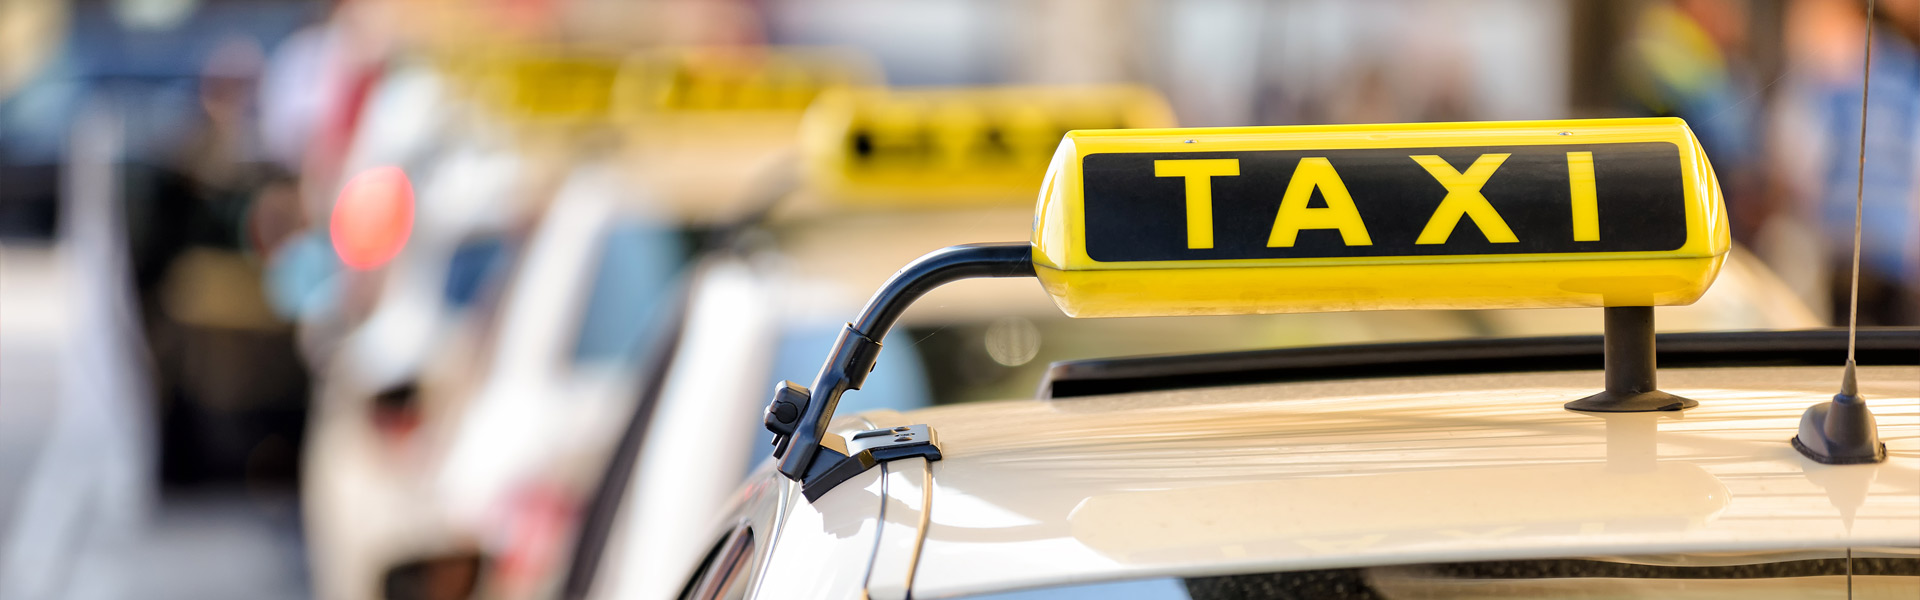 Taxi Cab Accident Attorney Atlanta and Surrounding Counties